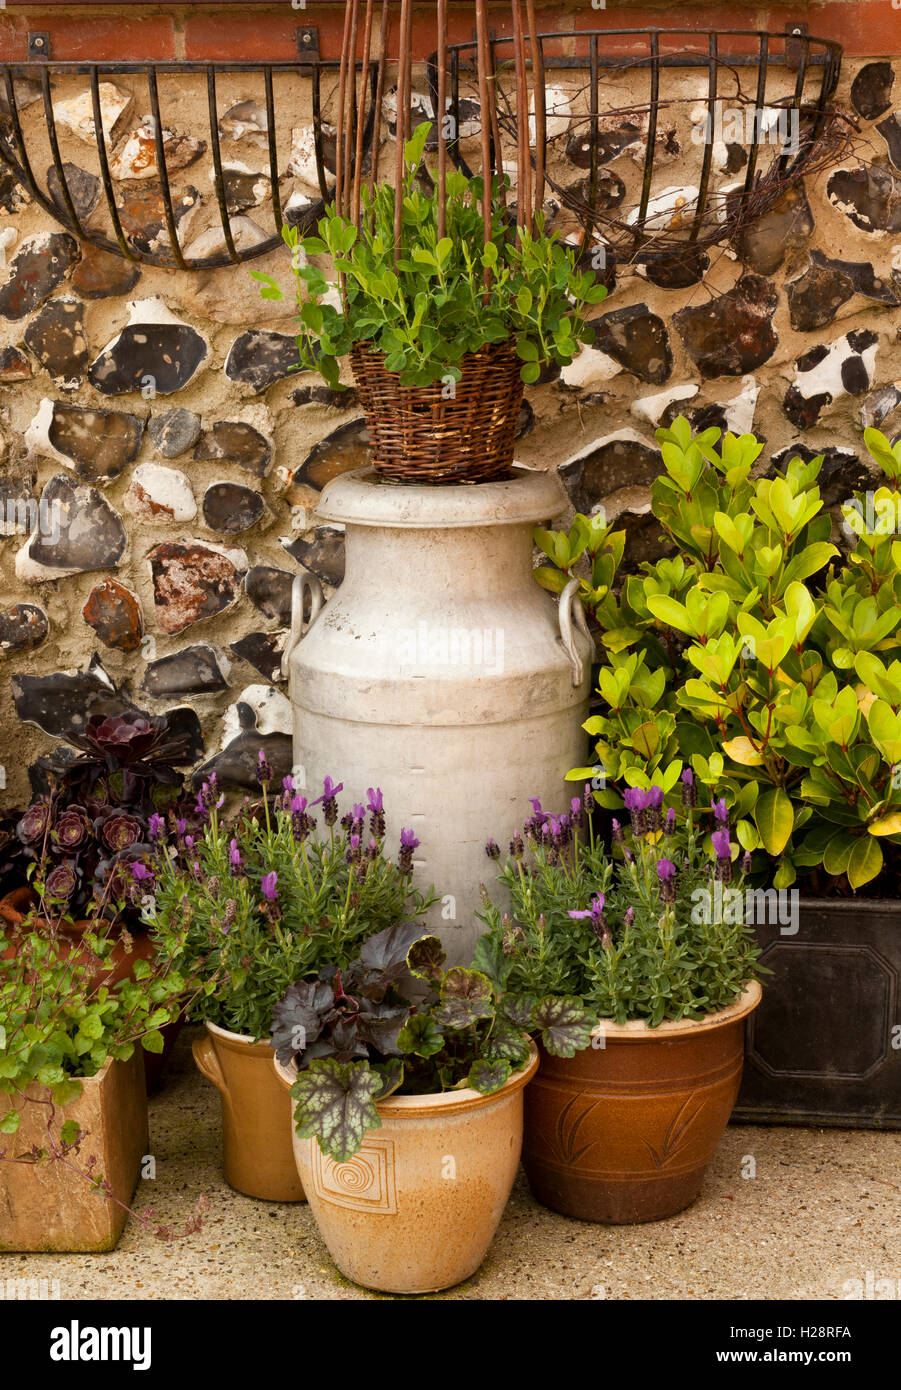 Flower Pots and an old milk churn displaying flowering plants Stock Photo